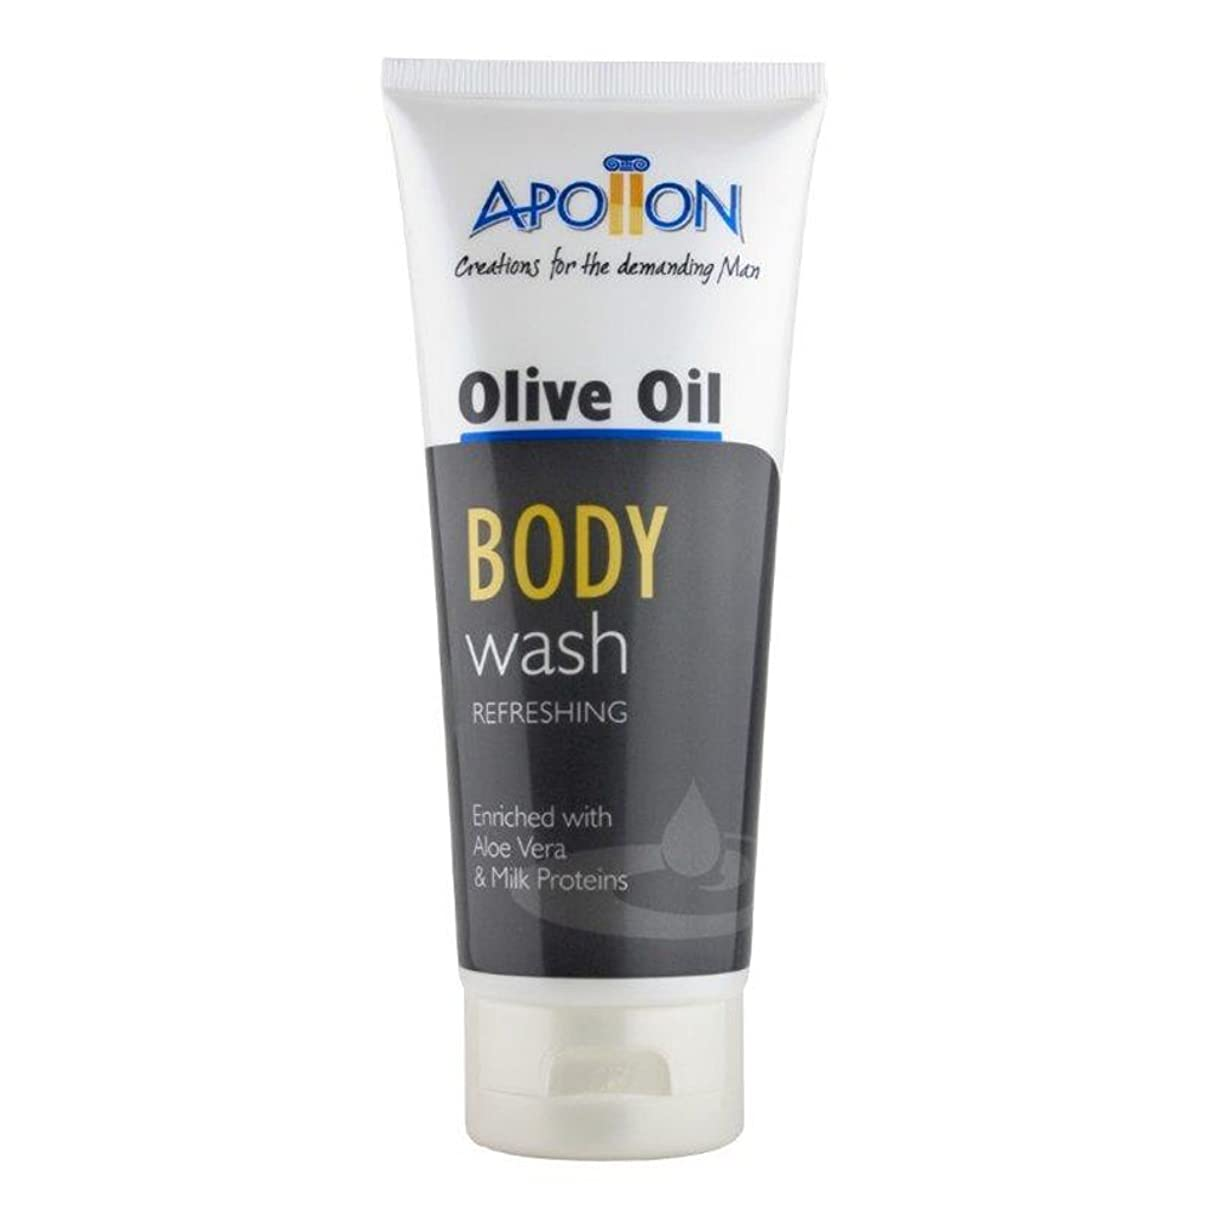 引数責めるドールAphrodite Apollon Olive Oil Body Wash for Men 200ml [Misc.] / ???200????????????????????????????????????[ Misc. ]